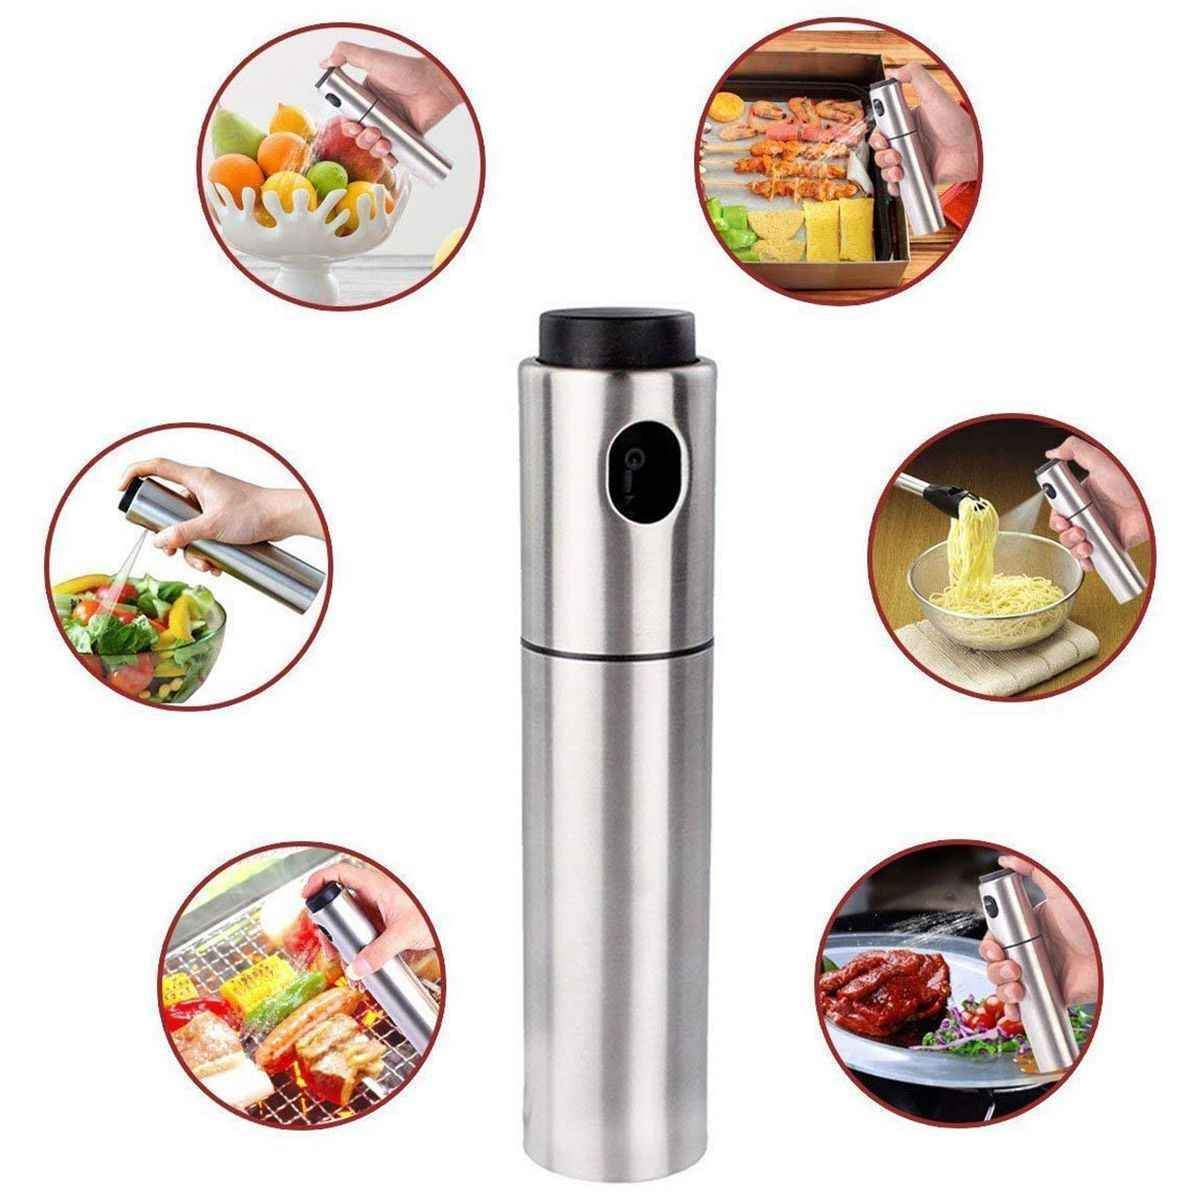 Stainless Steel Olive  Spray Bottle Oil Sprayer Pot Cooking Kitchen Tools